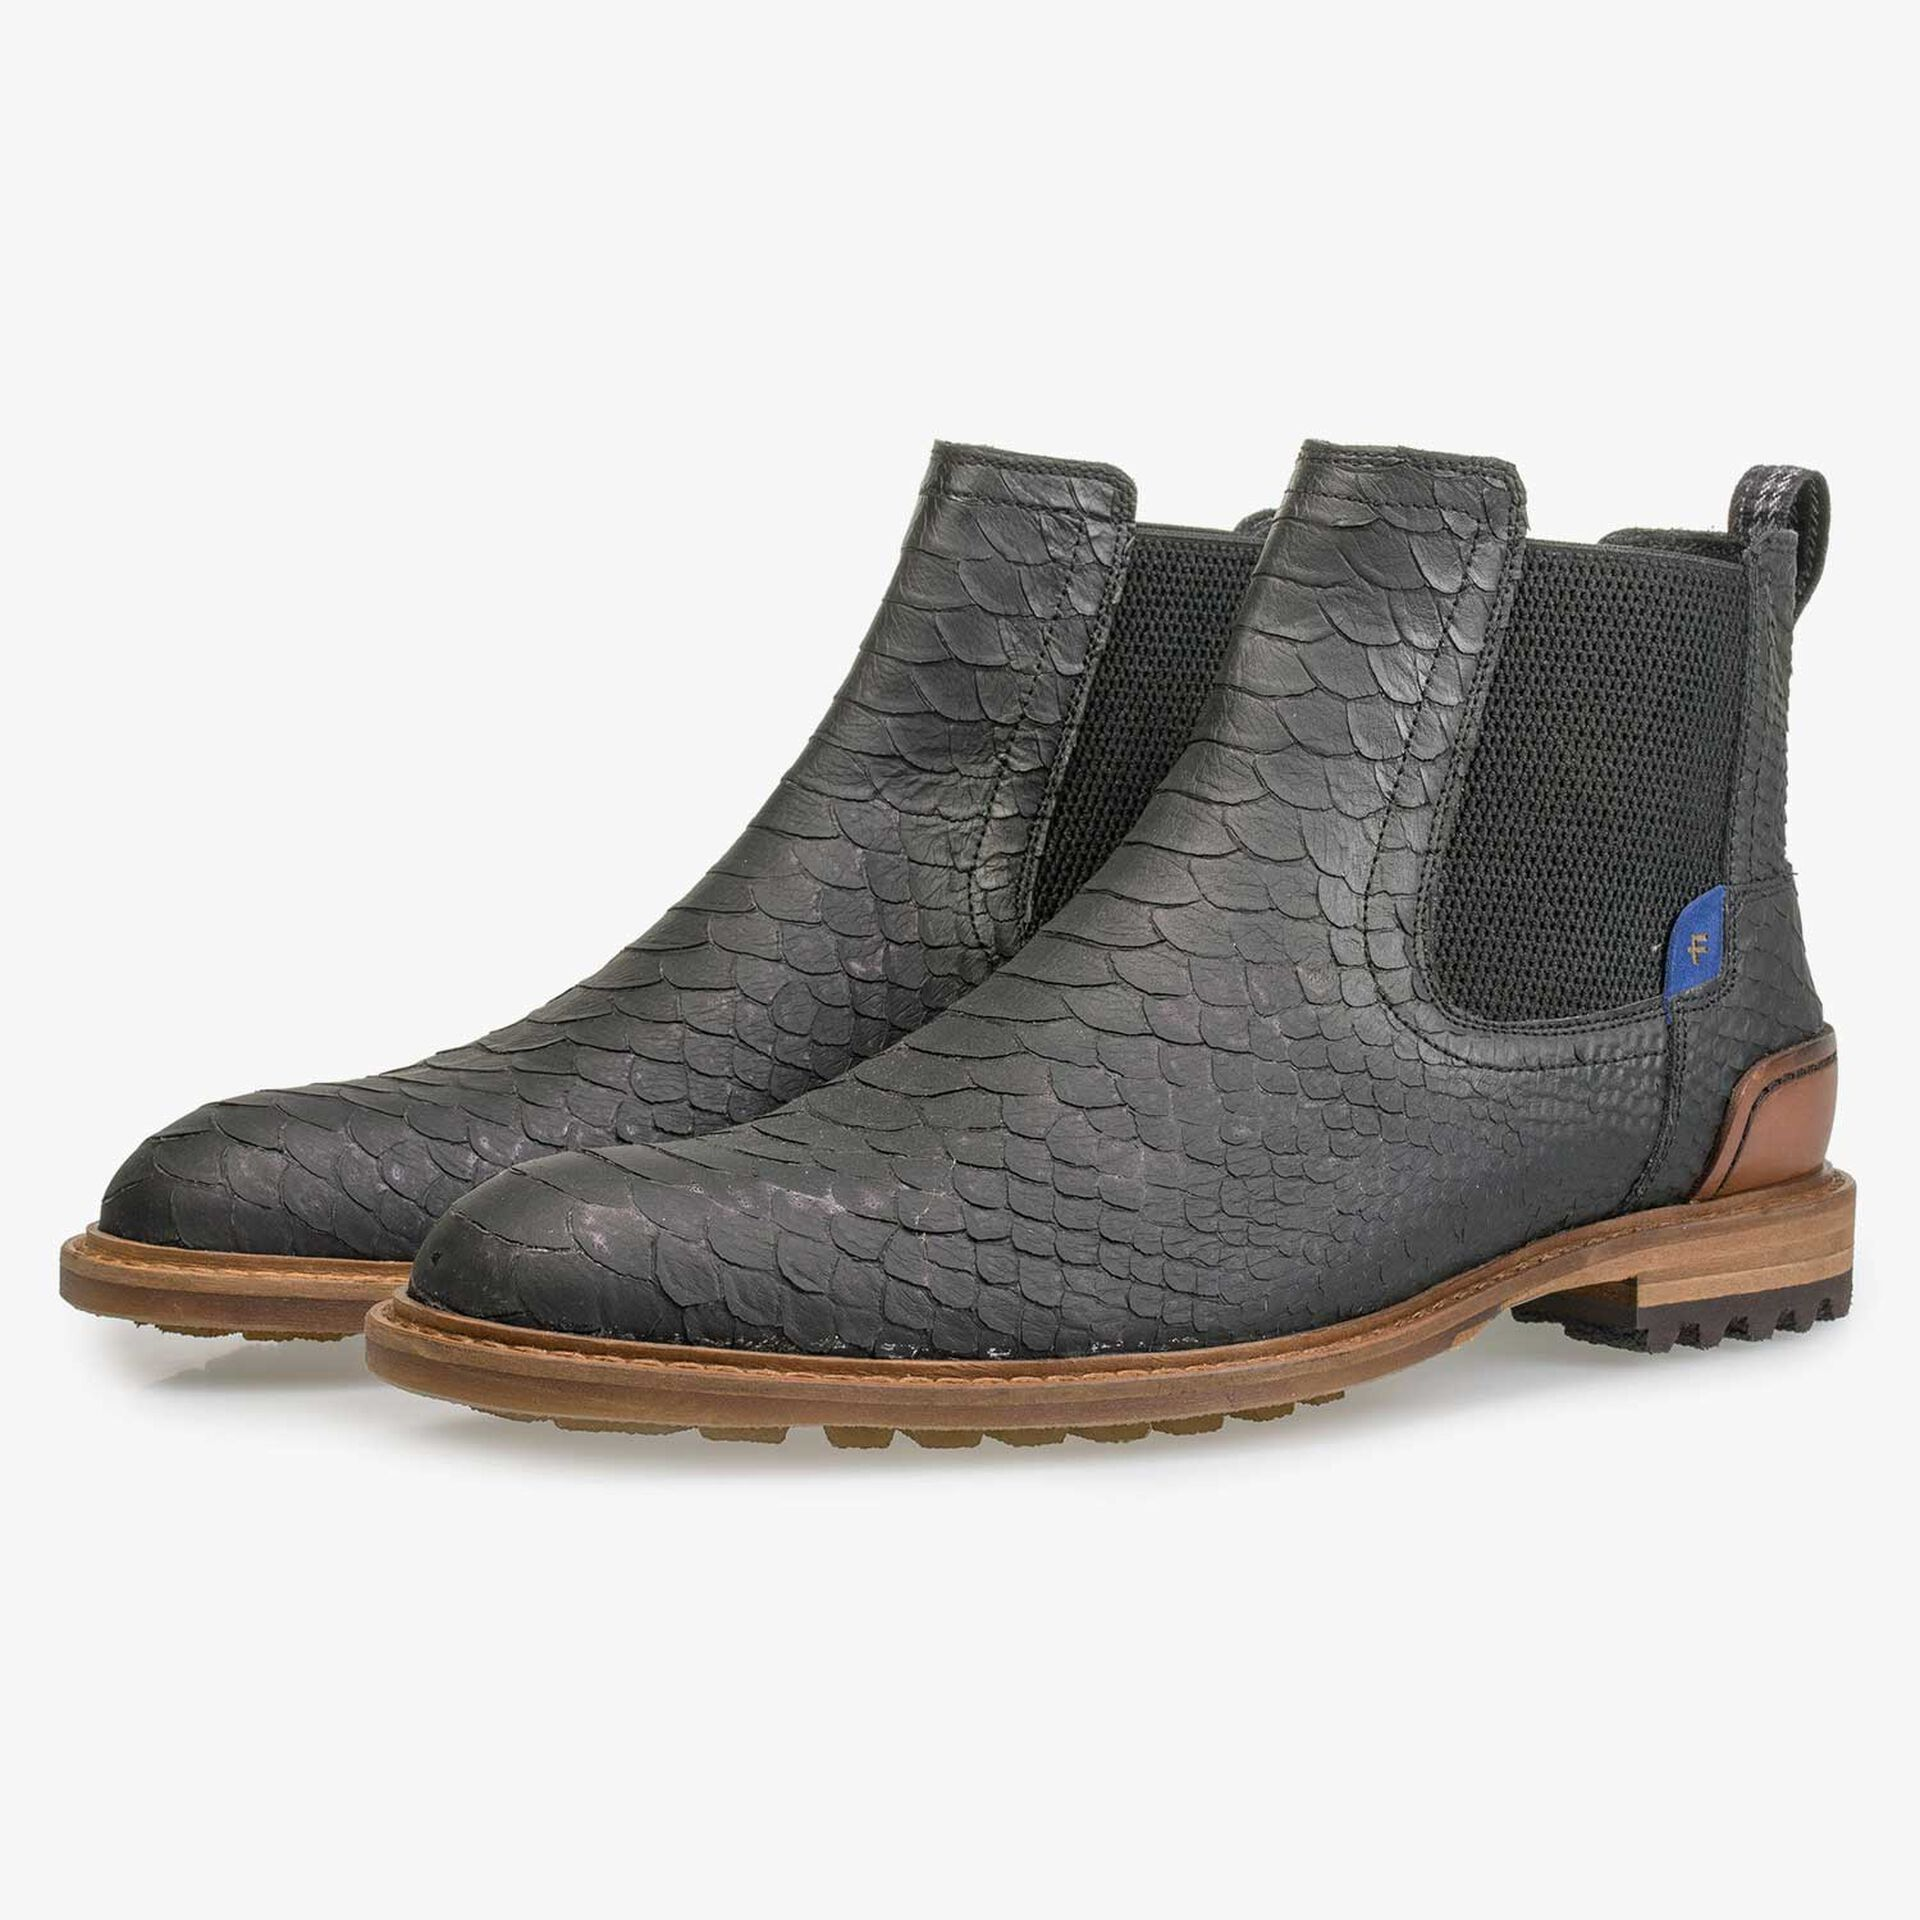 Grey leather Chelsea boot with snake print